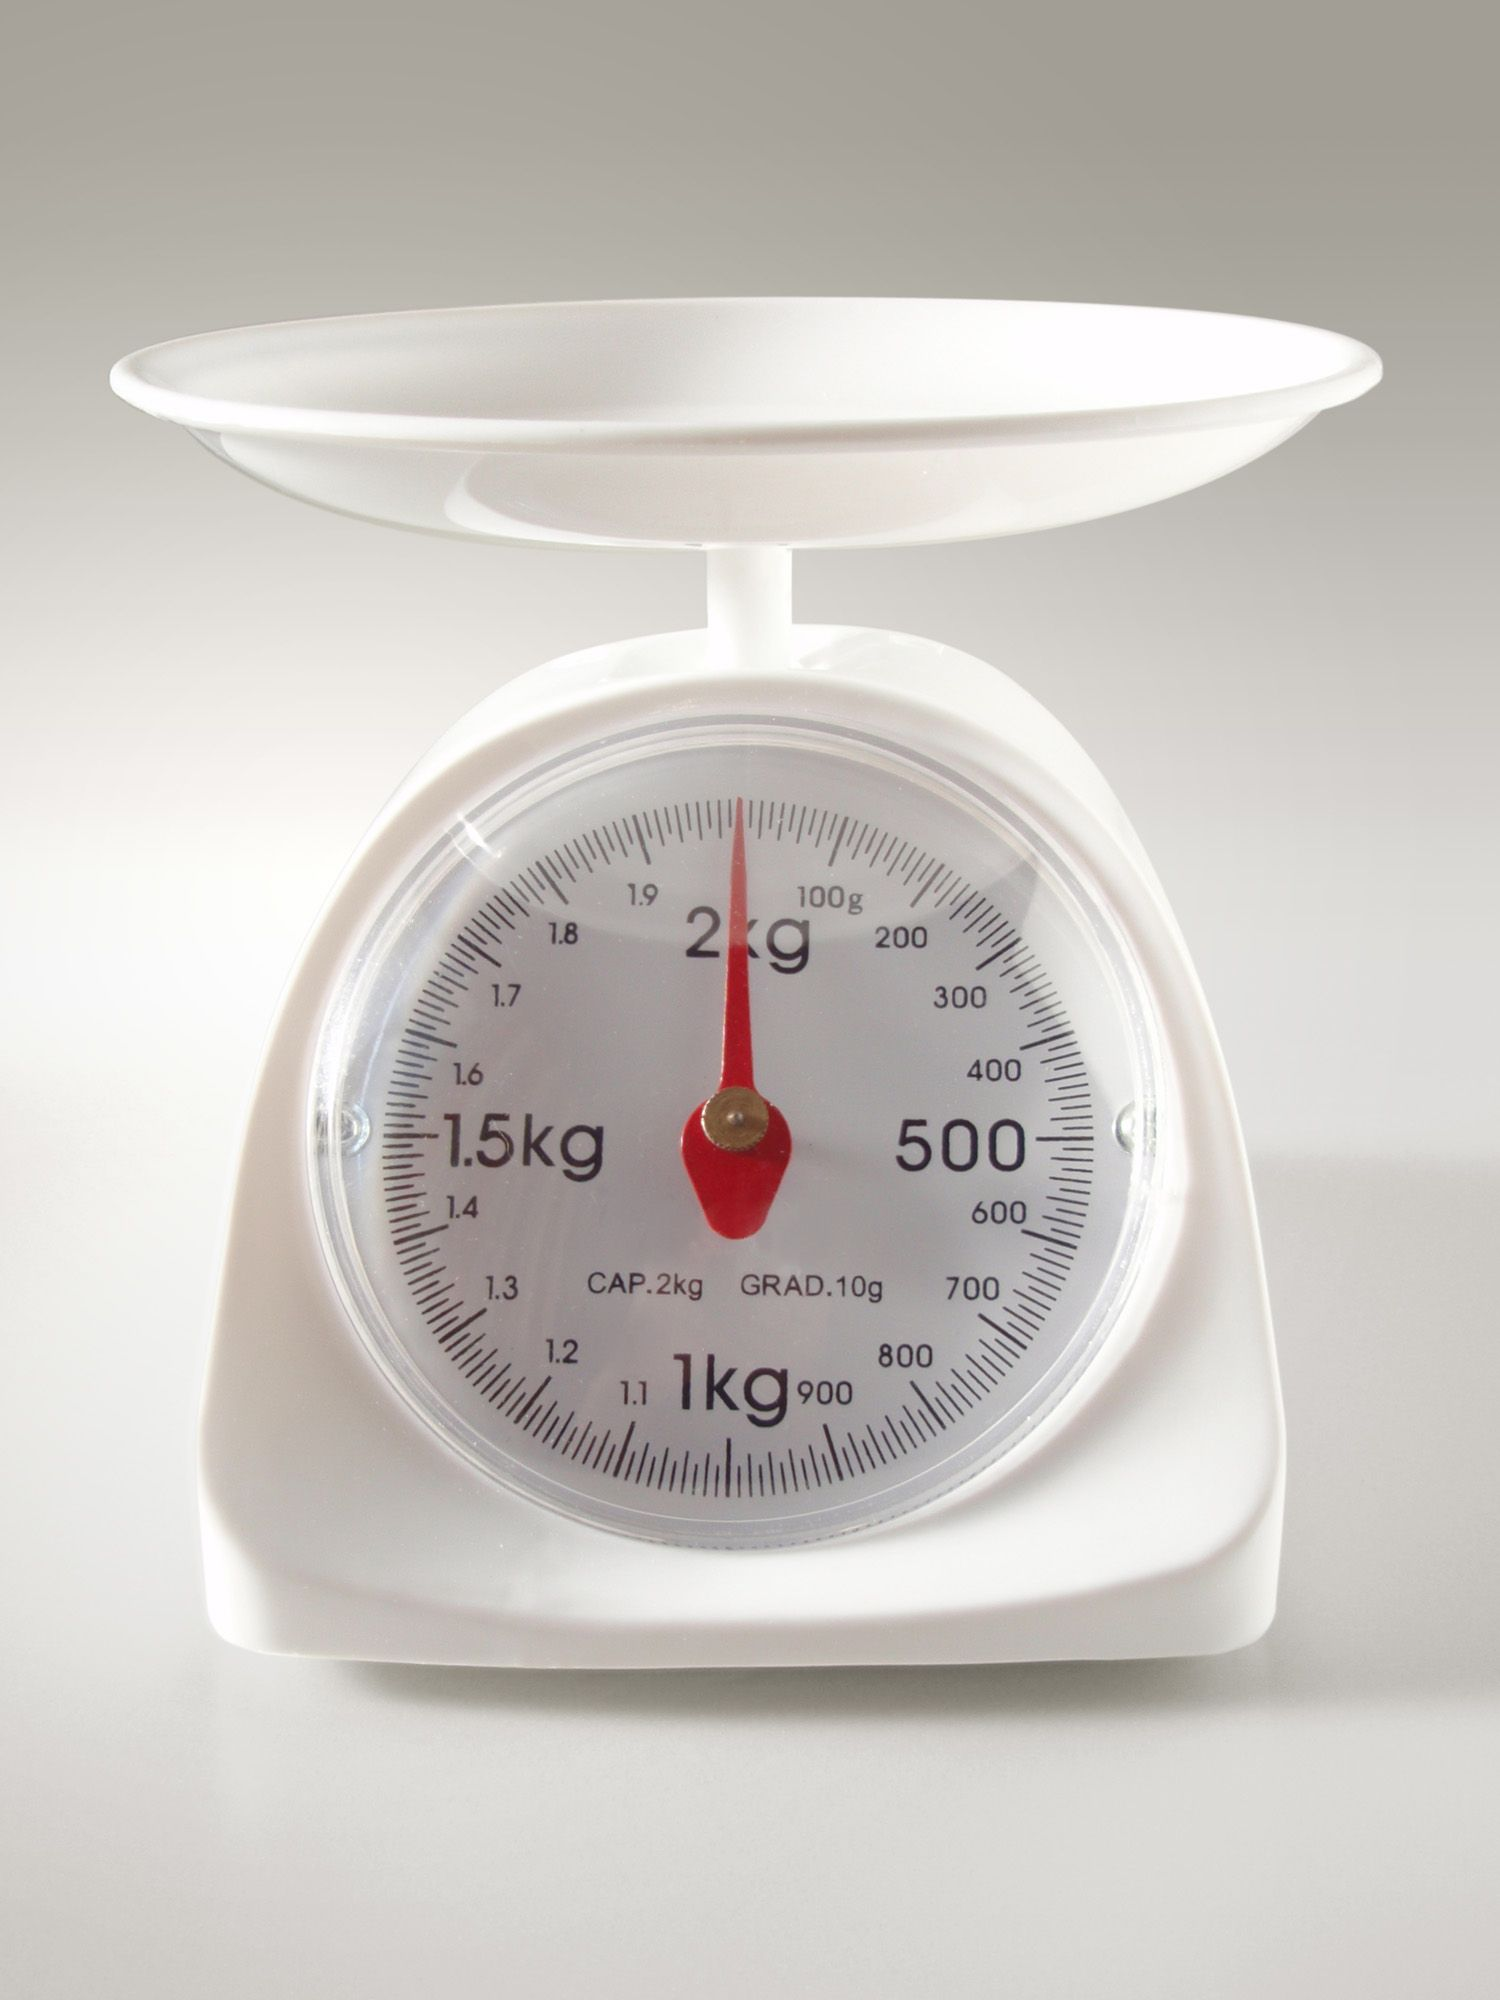 Weighing Scale Metric Google Search